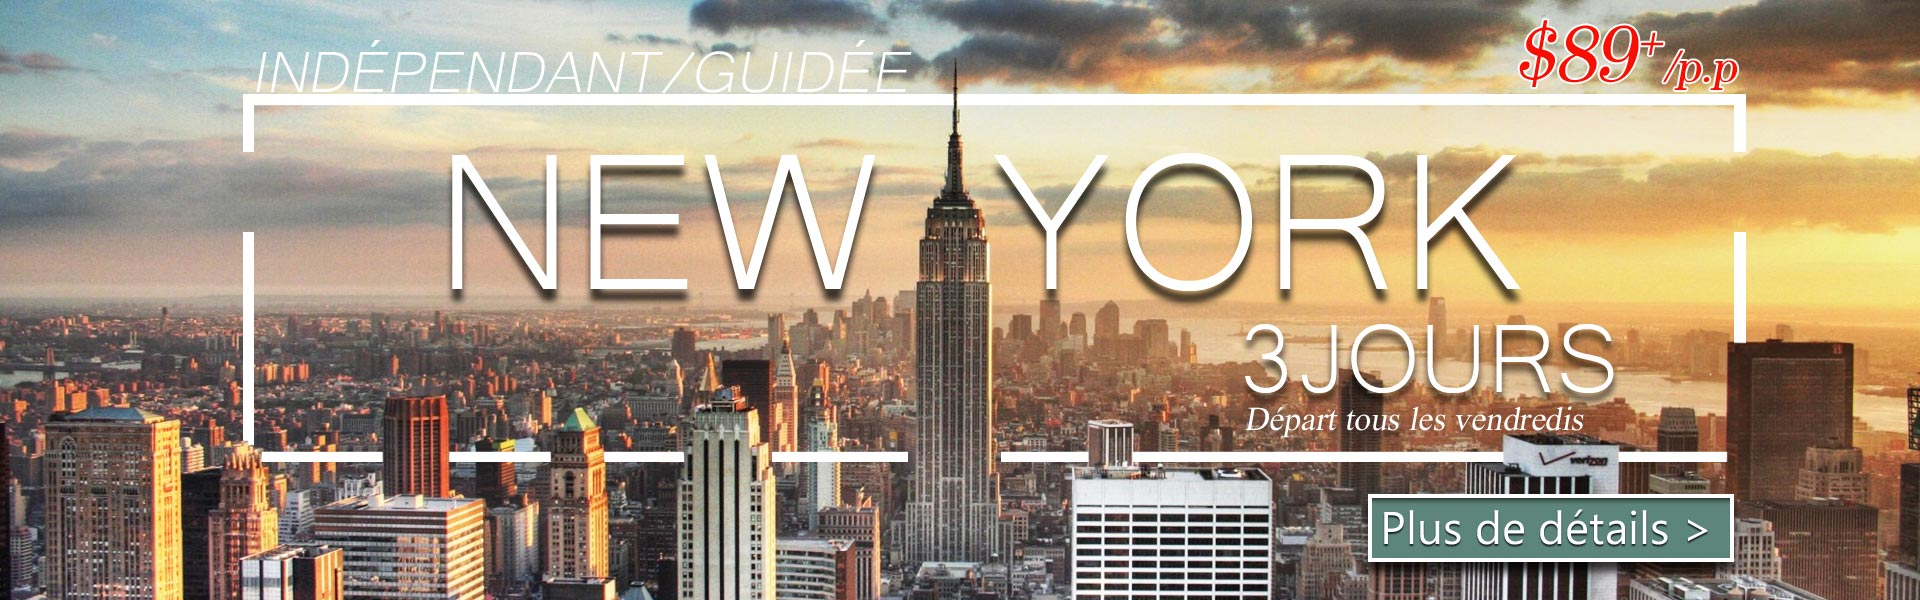 New York Guide 3 Jours YorkConcord Tours Travel